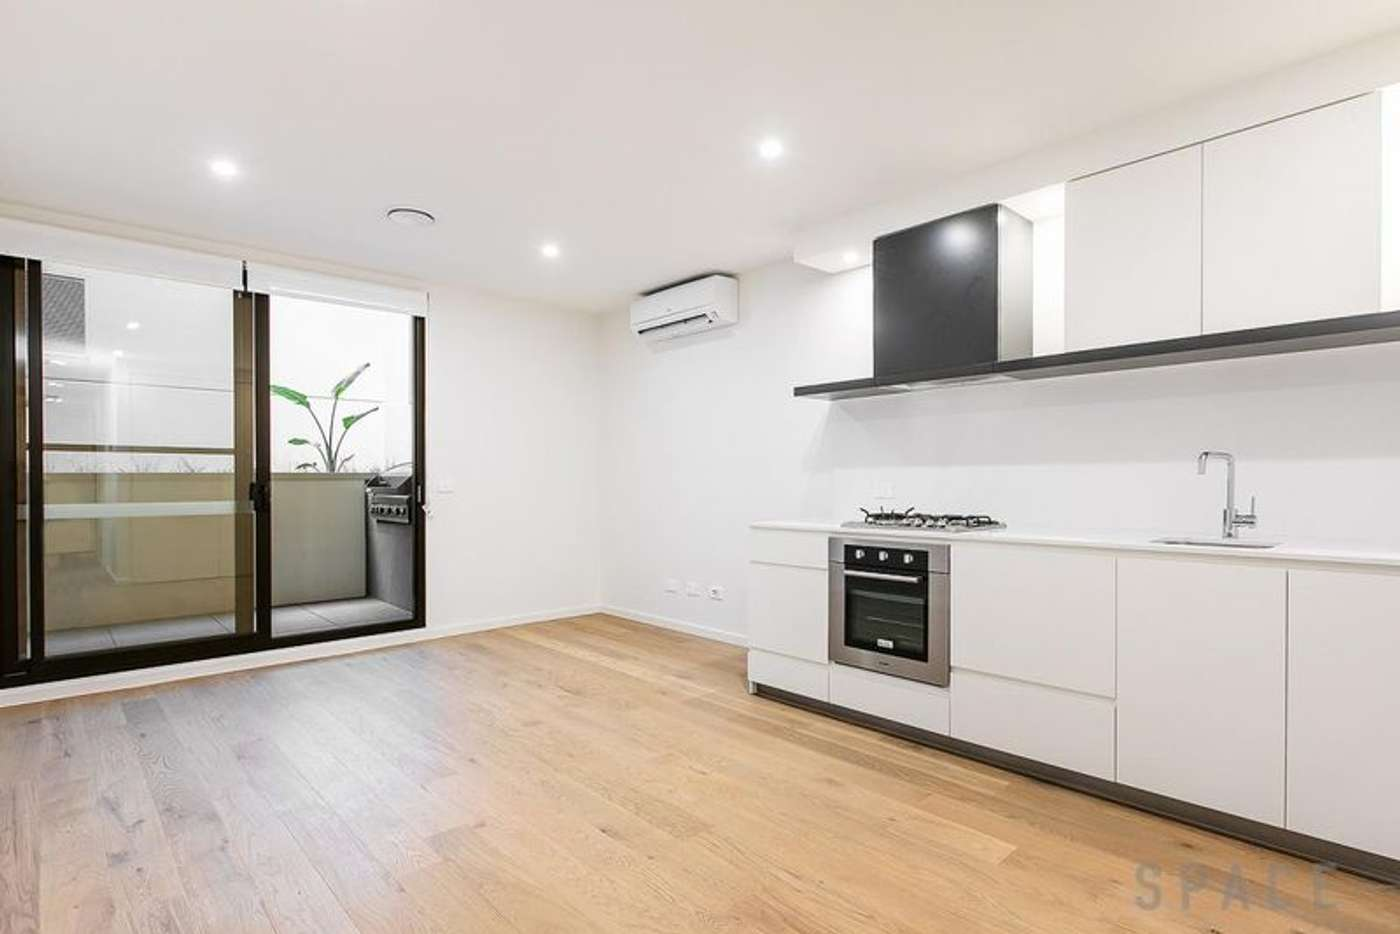 Main view of Homely apartment listing, 106/16 Grey Street, St Kilda VIC 3182